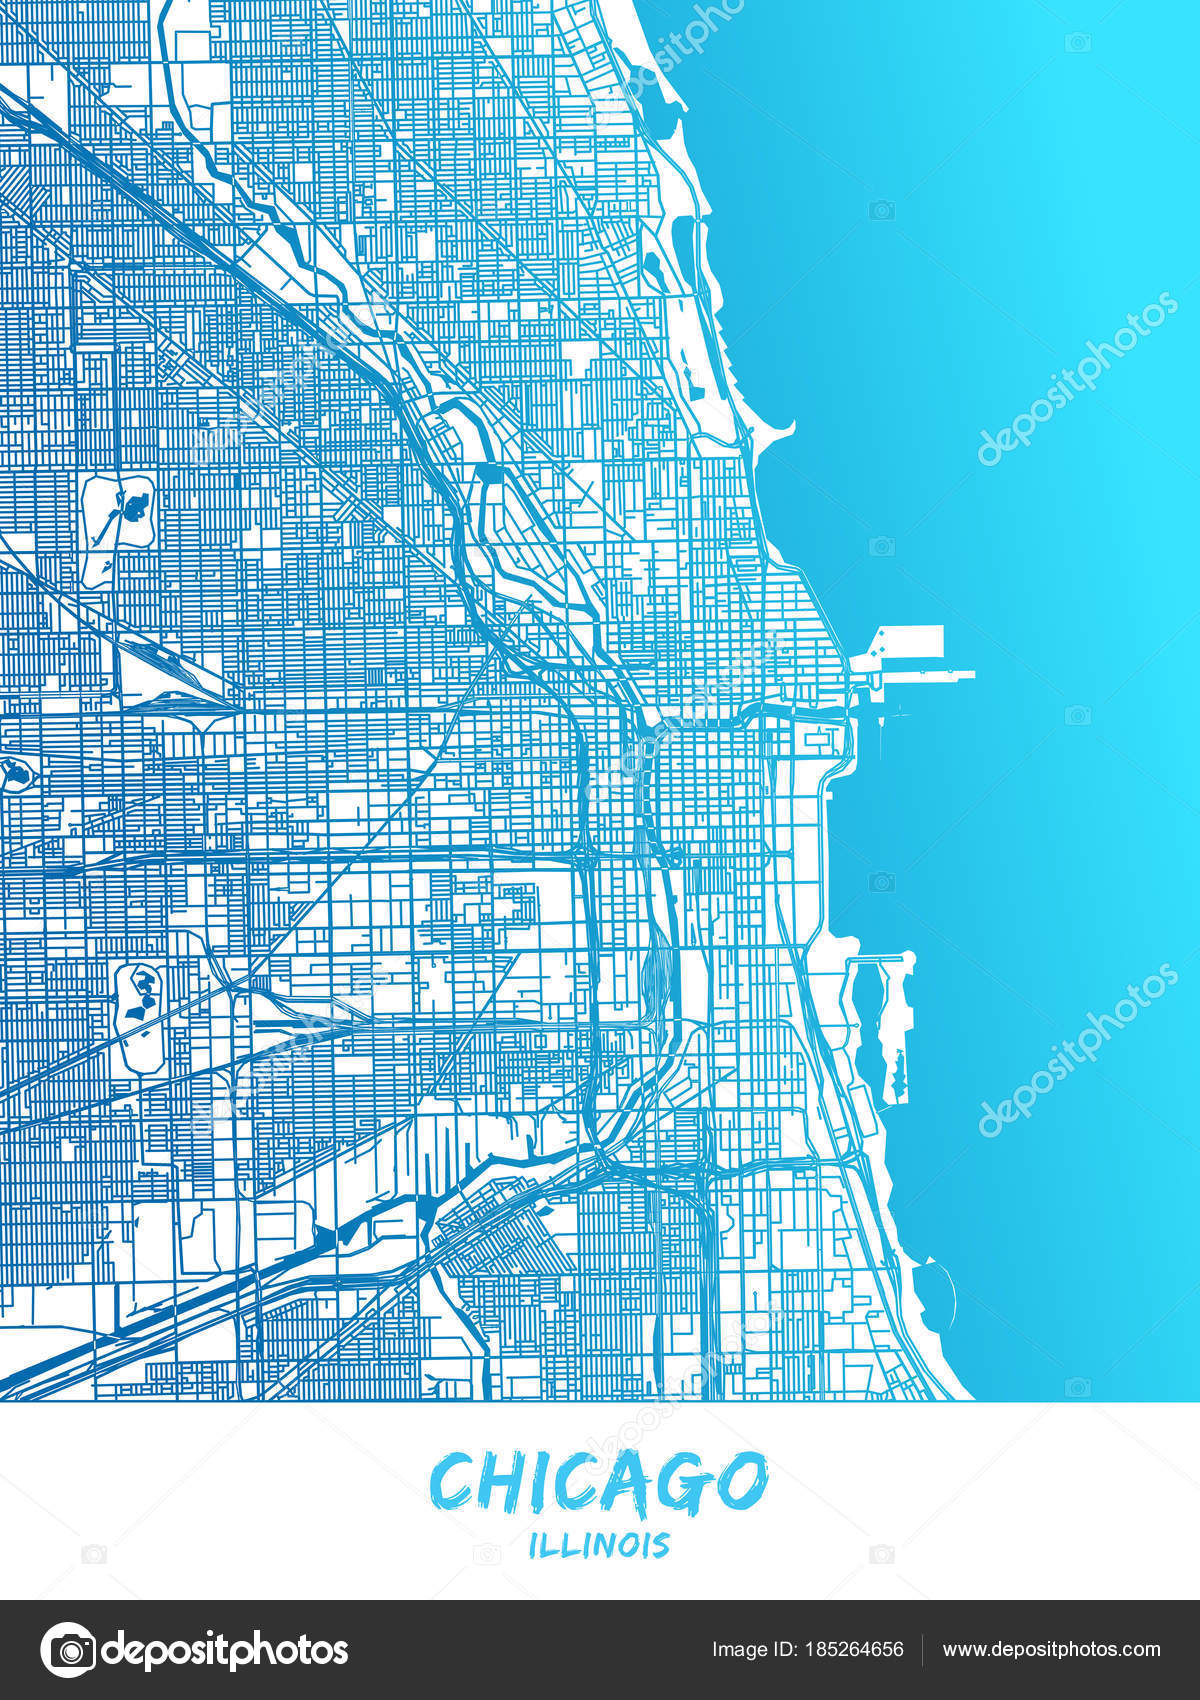 Chicago Illinois Map Poster Design Stock Vector mail